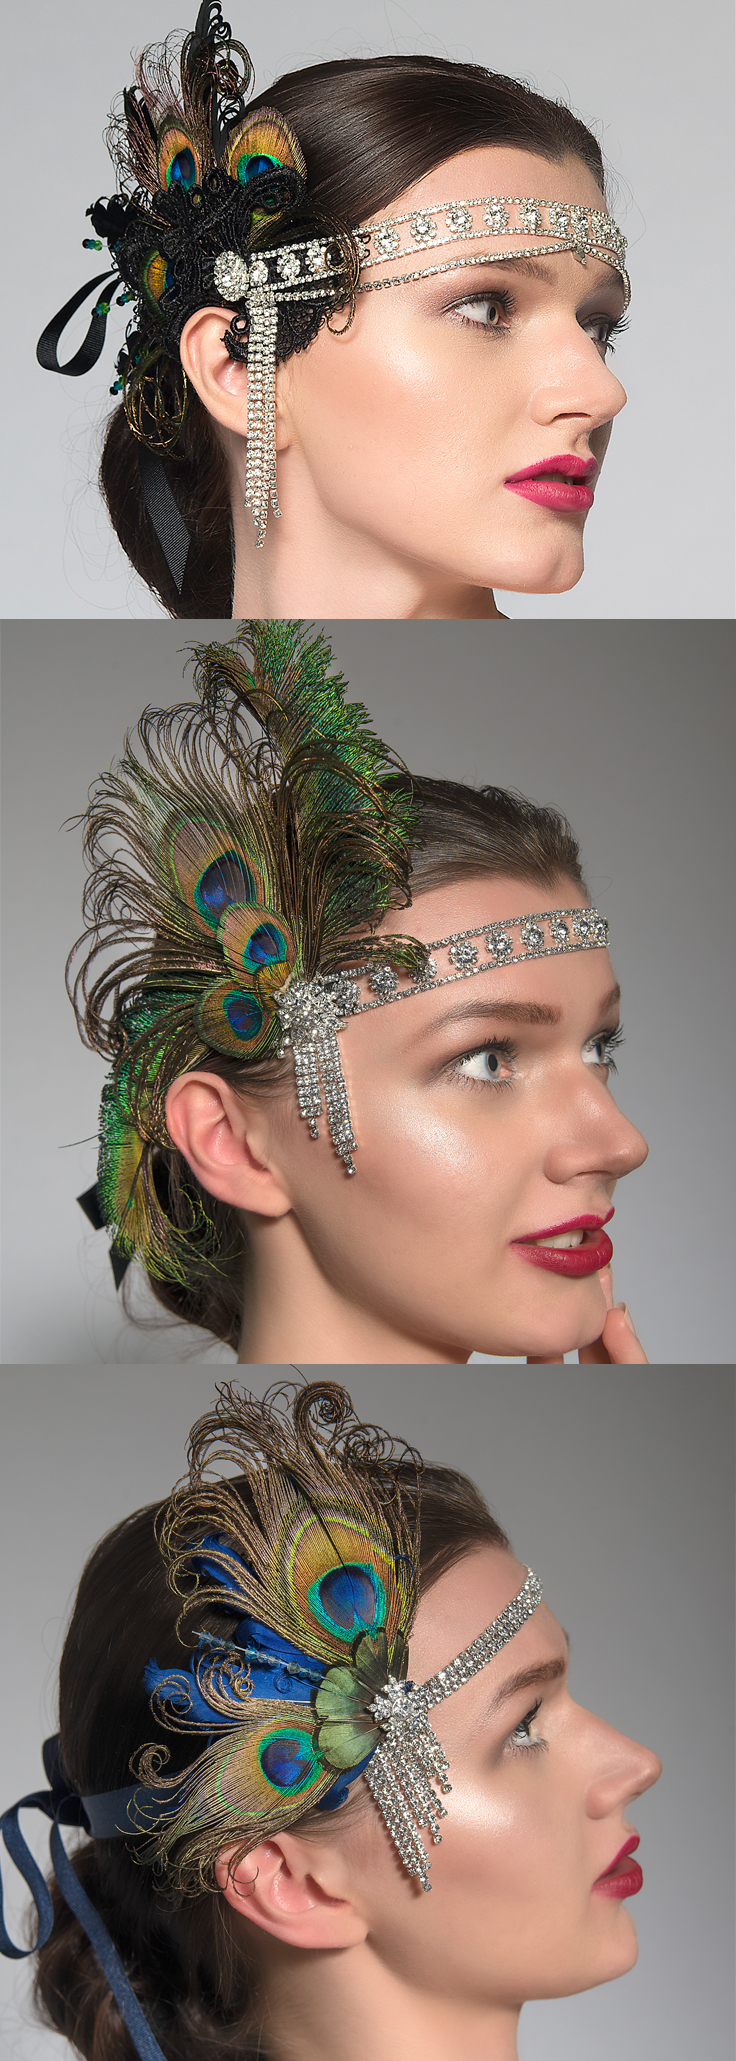 Handmade Designer Jazz Age Flapper Headbands Headpieces. Peacock, Swarovski Crystal and Rhinestone Gatsby Downton Abbey Vintage inspired headwear. 1920s Roaring 20s theme Christmas Parties, Halloween, New Years eve and Birthday party ideas. #millinery #downtonabbey #christmas #jazzagelawnparty #jazzage #fashion #fashionista #artdeco #fascinators #halloween #fashionaddict #frocktober #cybermonday #blackfriday